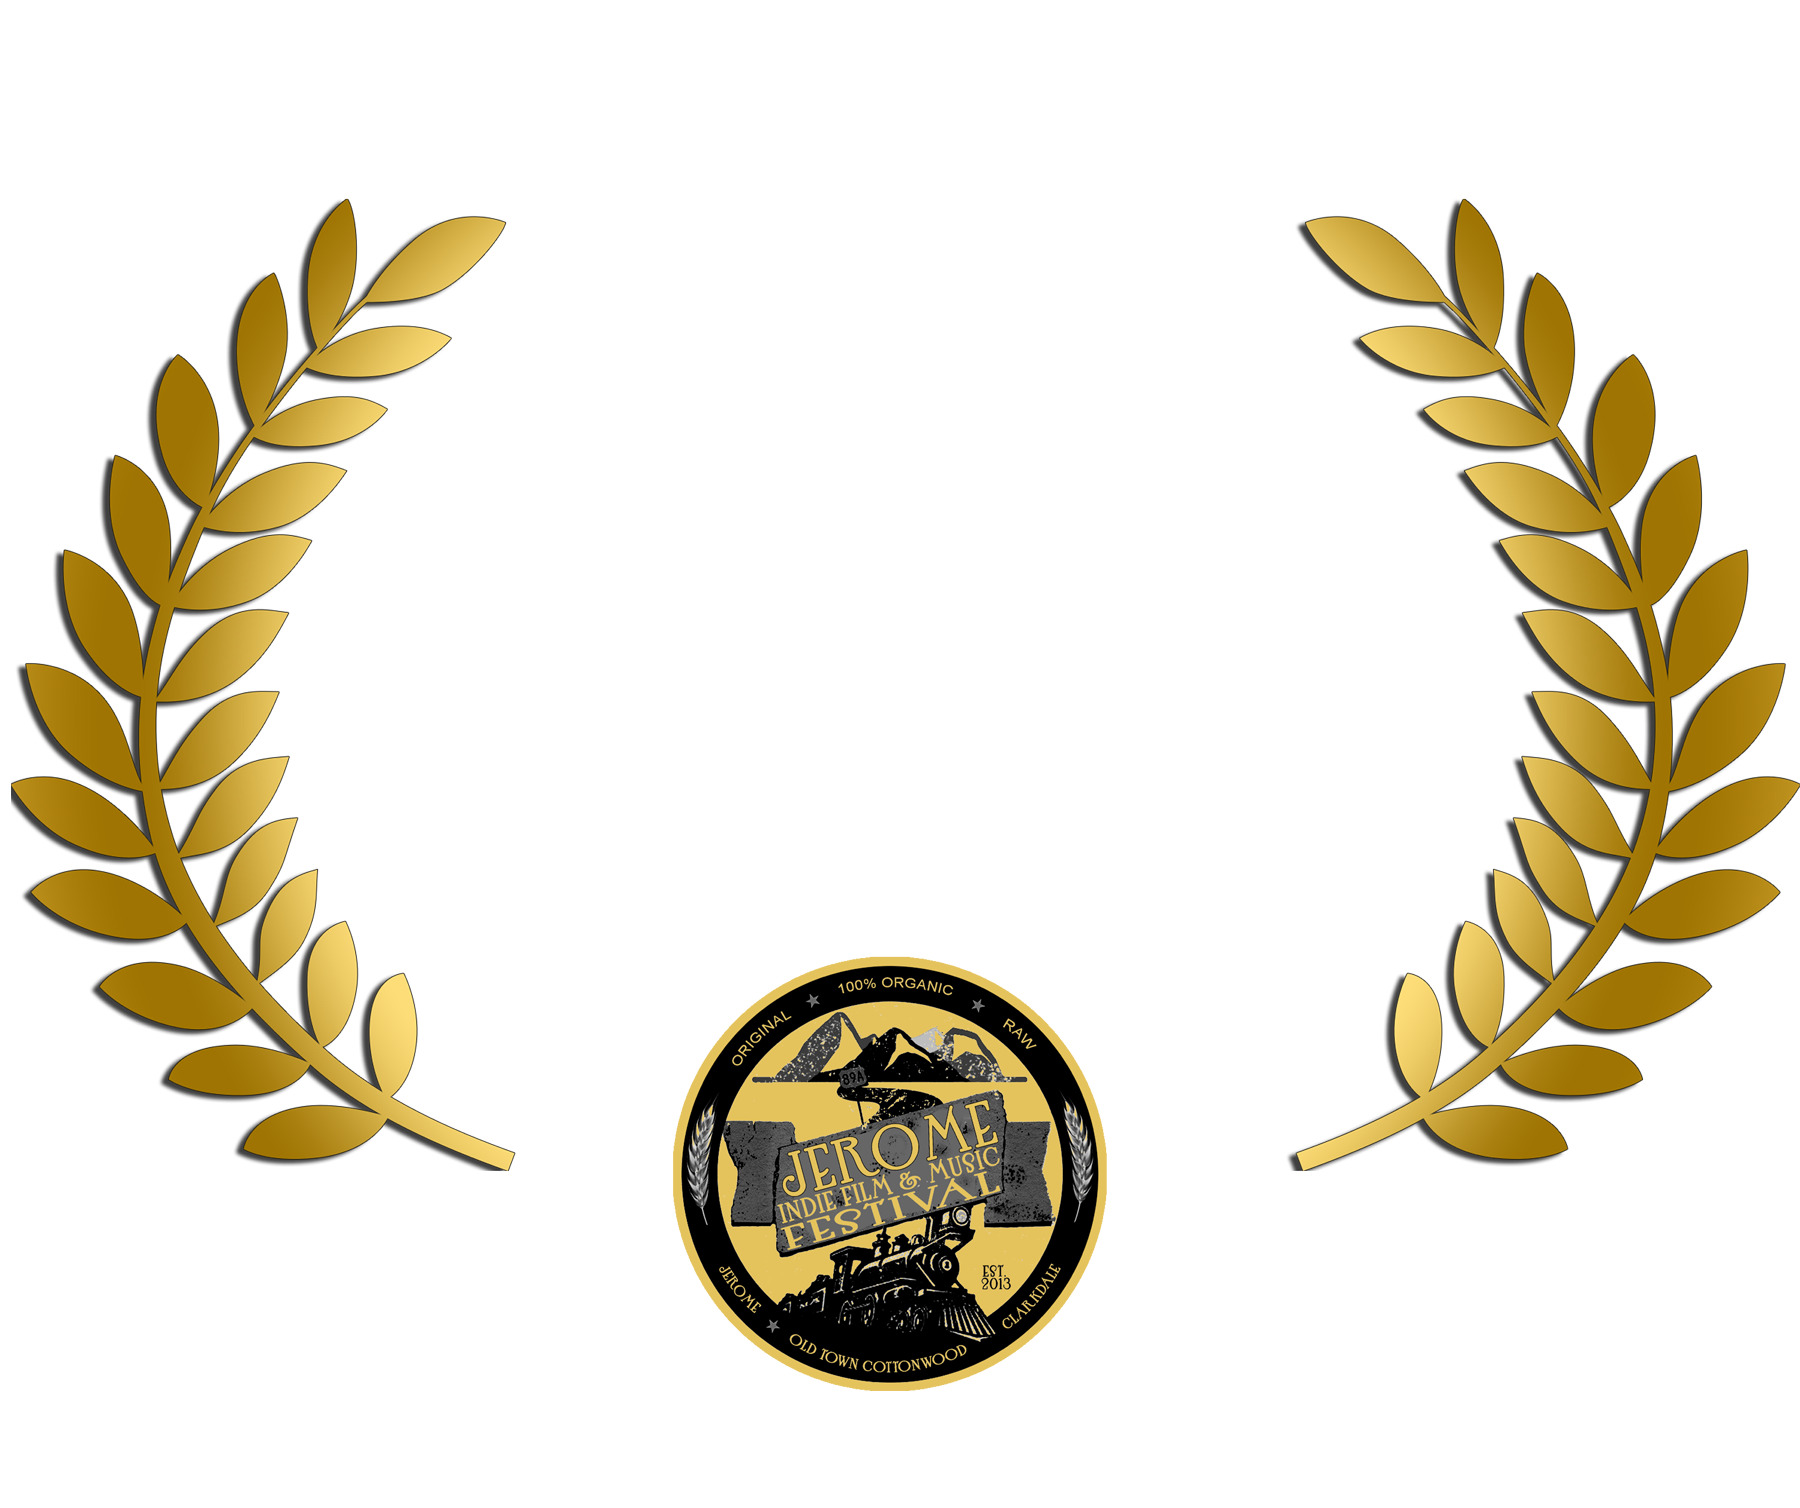 JIFMF official selection laurels, gold.png